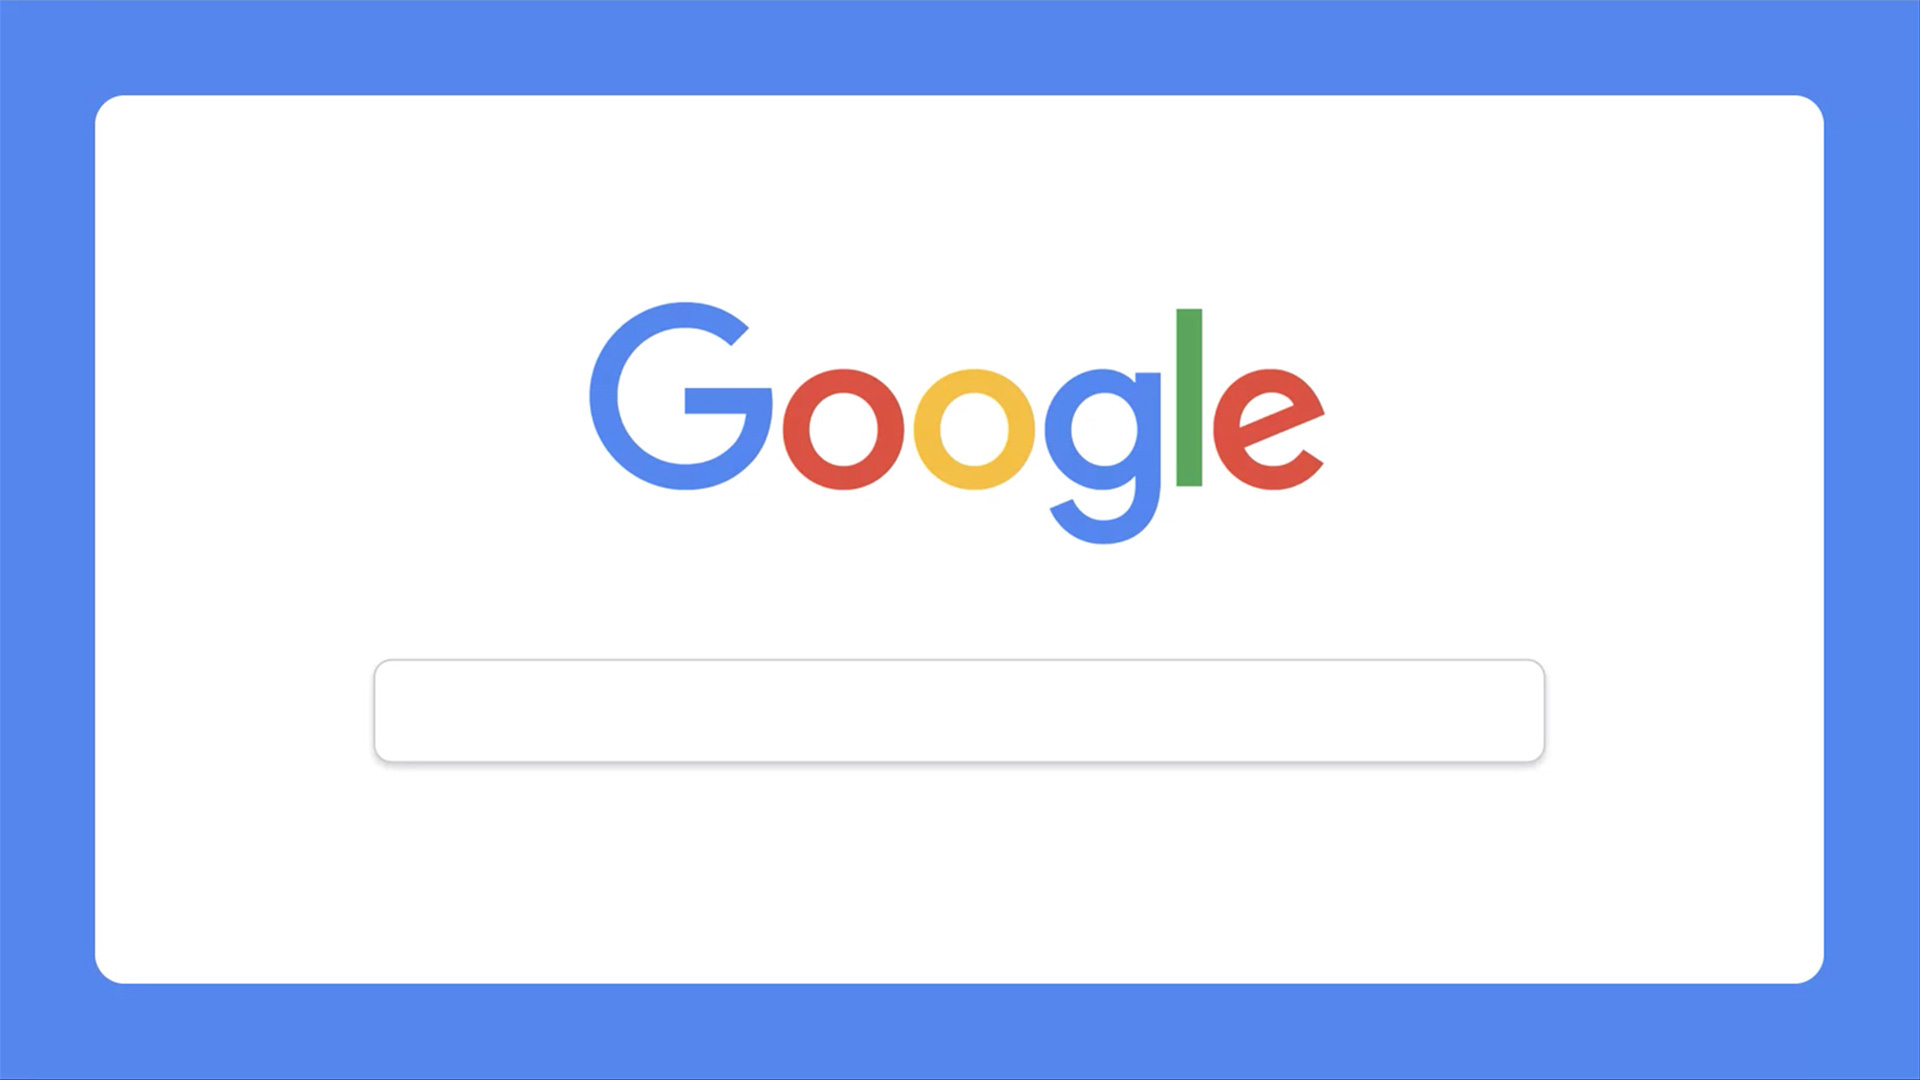 the iconic Google search bar